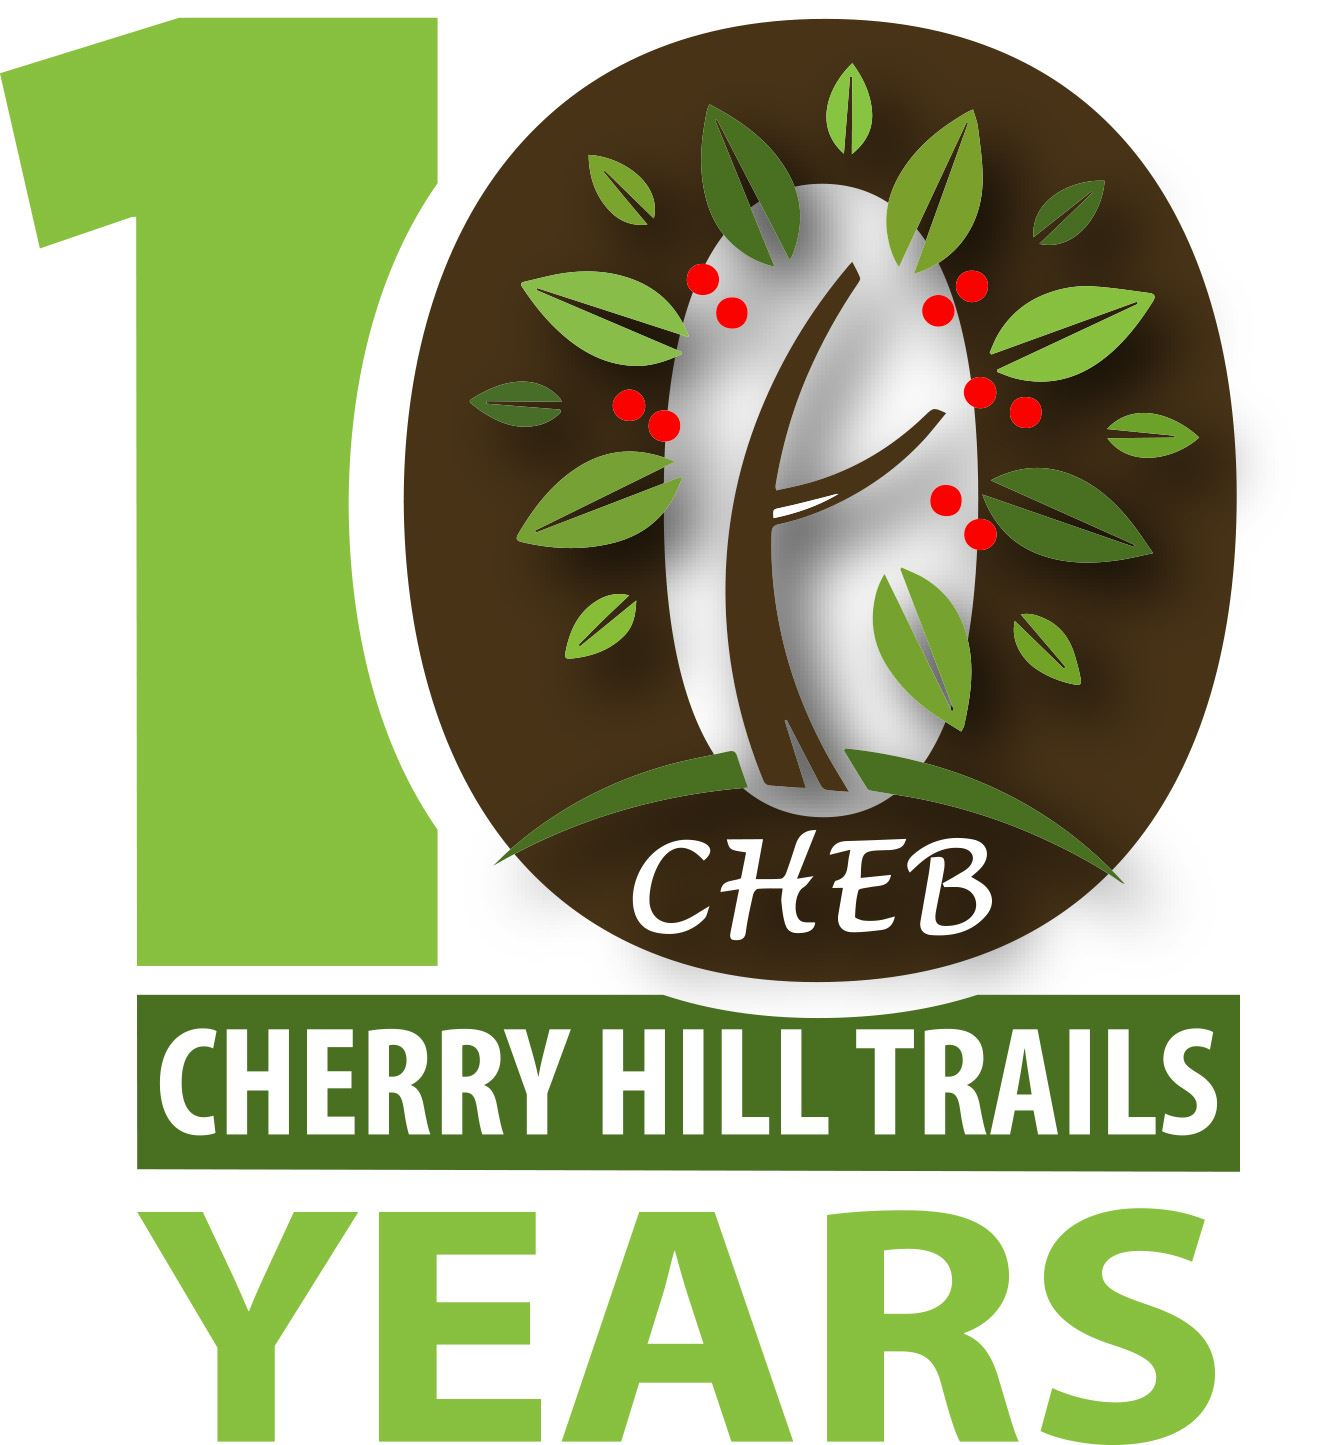 Cherry Hill Environmental Board 10th Anniversary logo